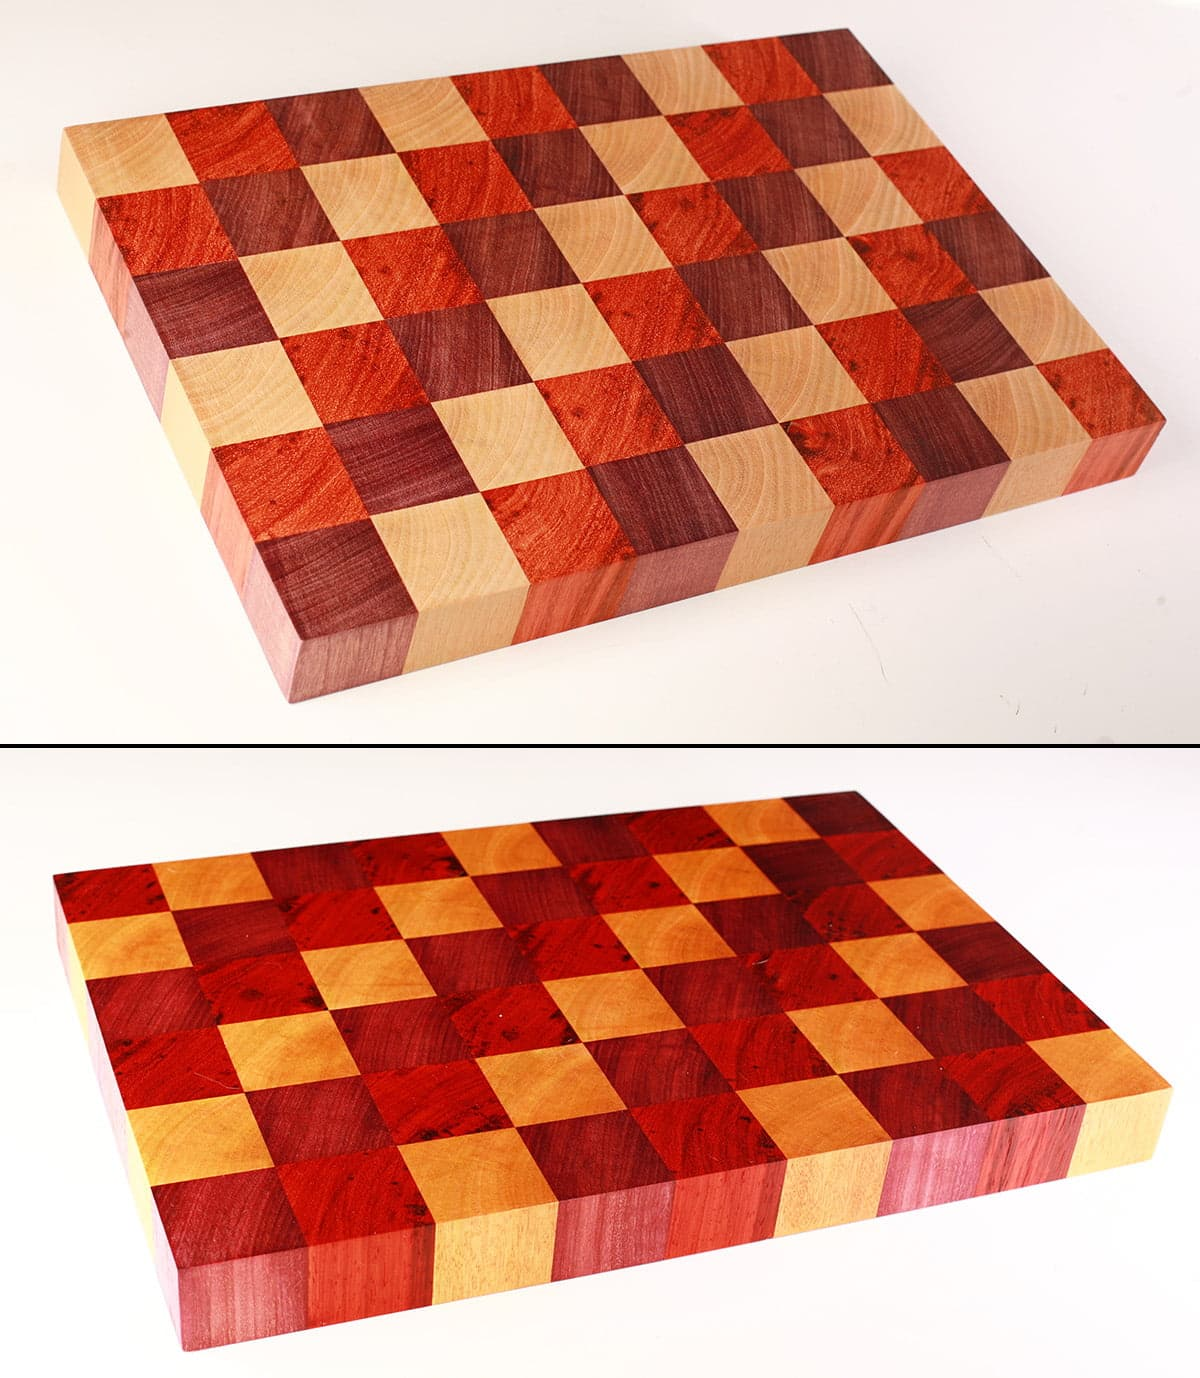 A close up view of 2 DIY cutting boards, each made up of colourful squares of wood - red, purple, and yellow.. The bottom one is darker and richer looking, as it's been finished with oil.